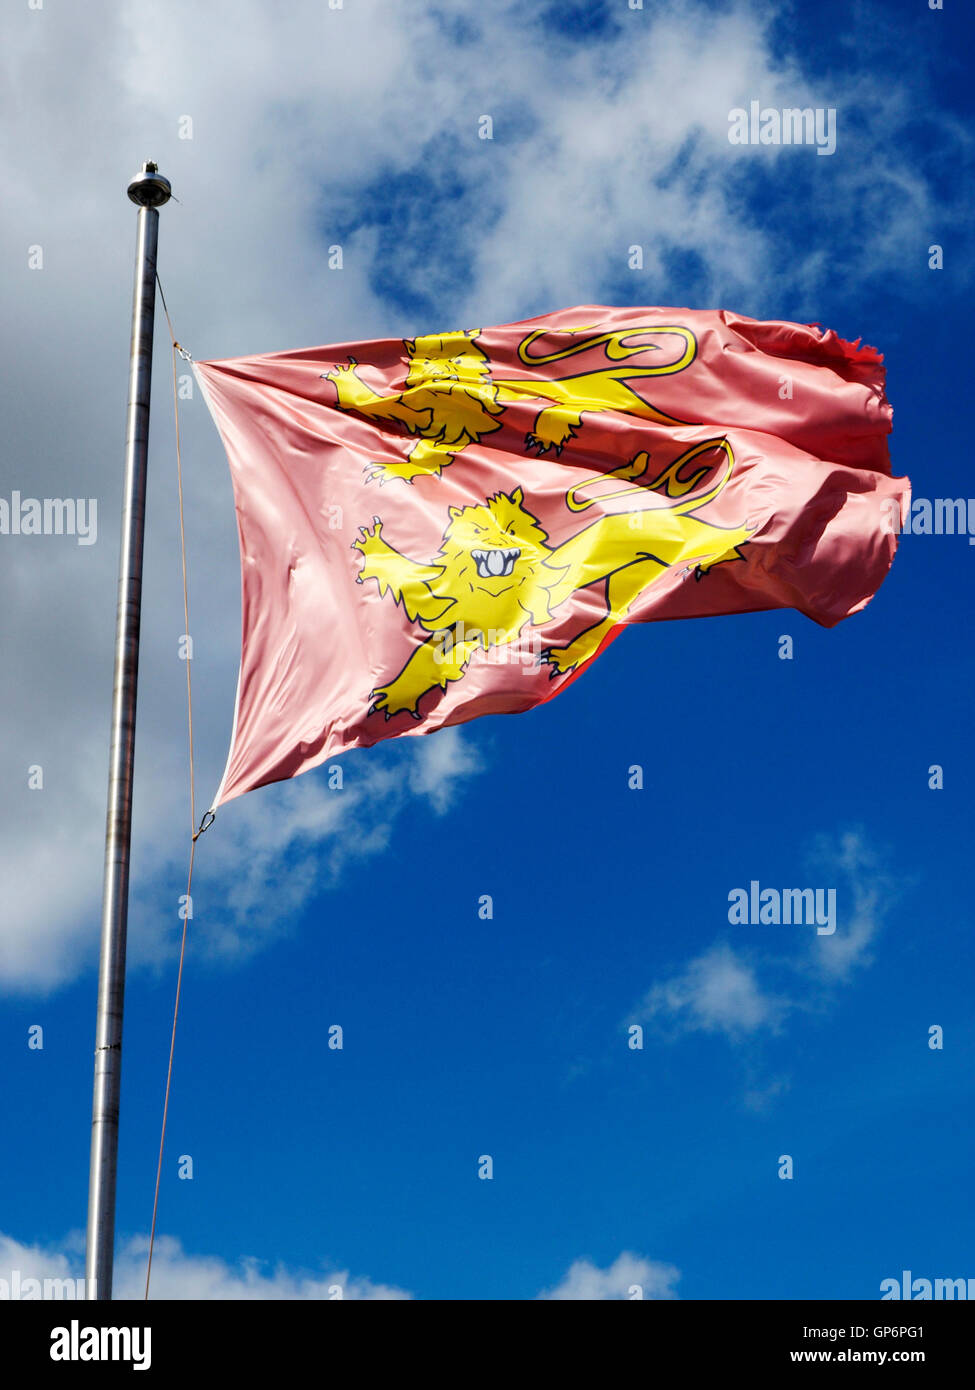 The flag of Normandy, (Normandie) a region of northern France. Drapeau du Normandie Stock Photo